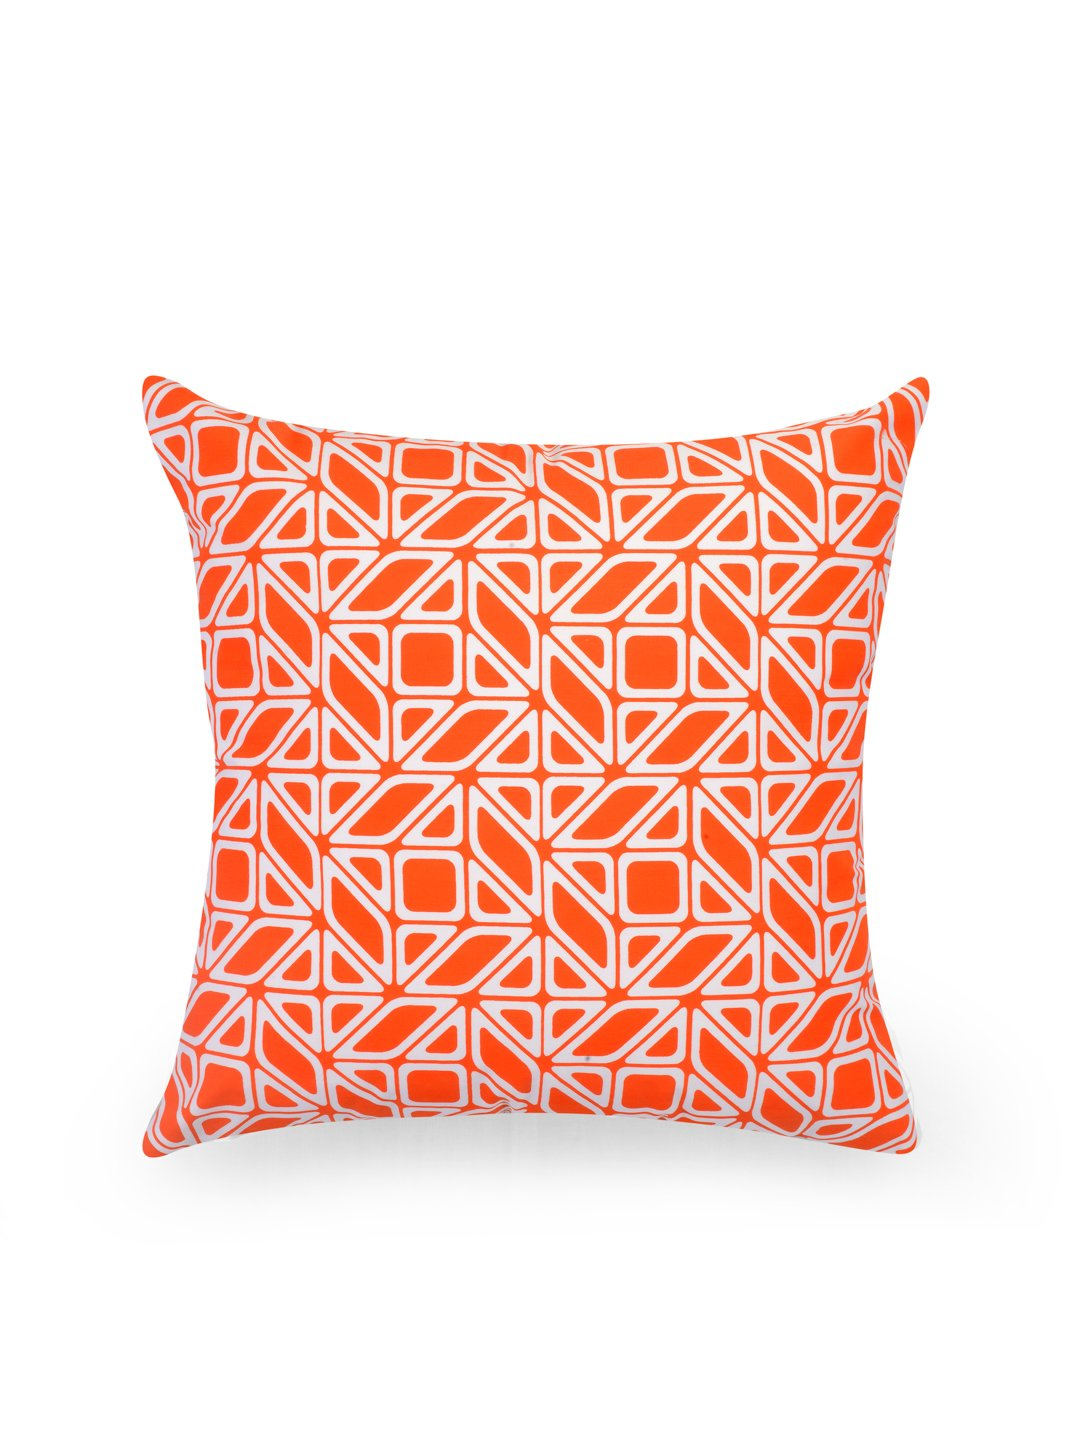 Hand-painted Tangerine Delight Cushion Covers (Set of 5) - RANGRAGE - 5